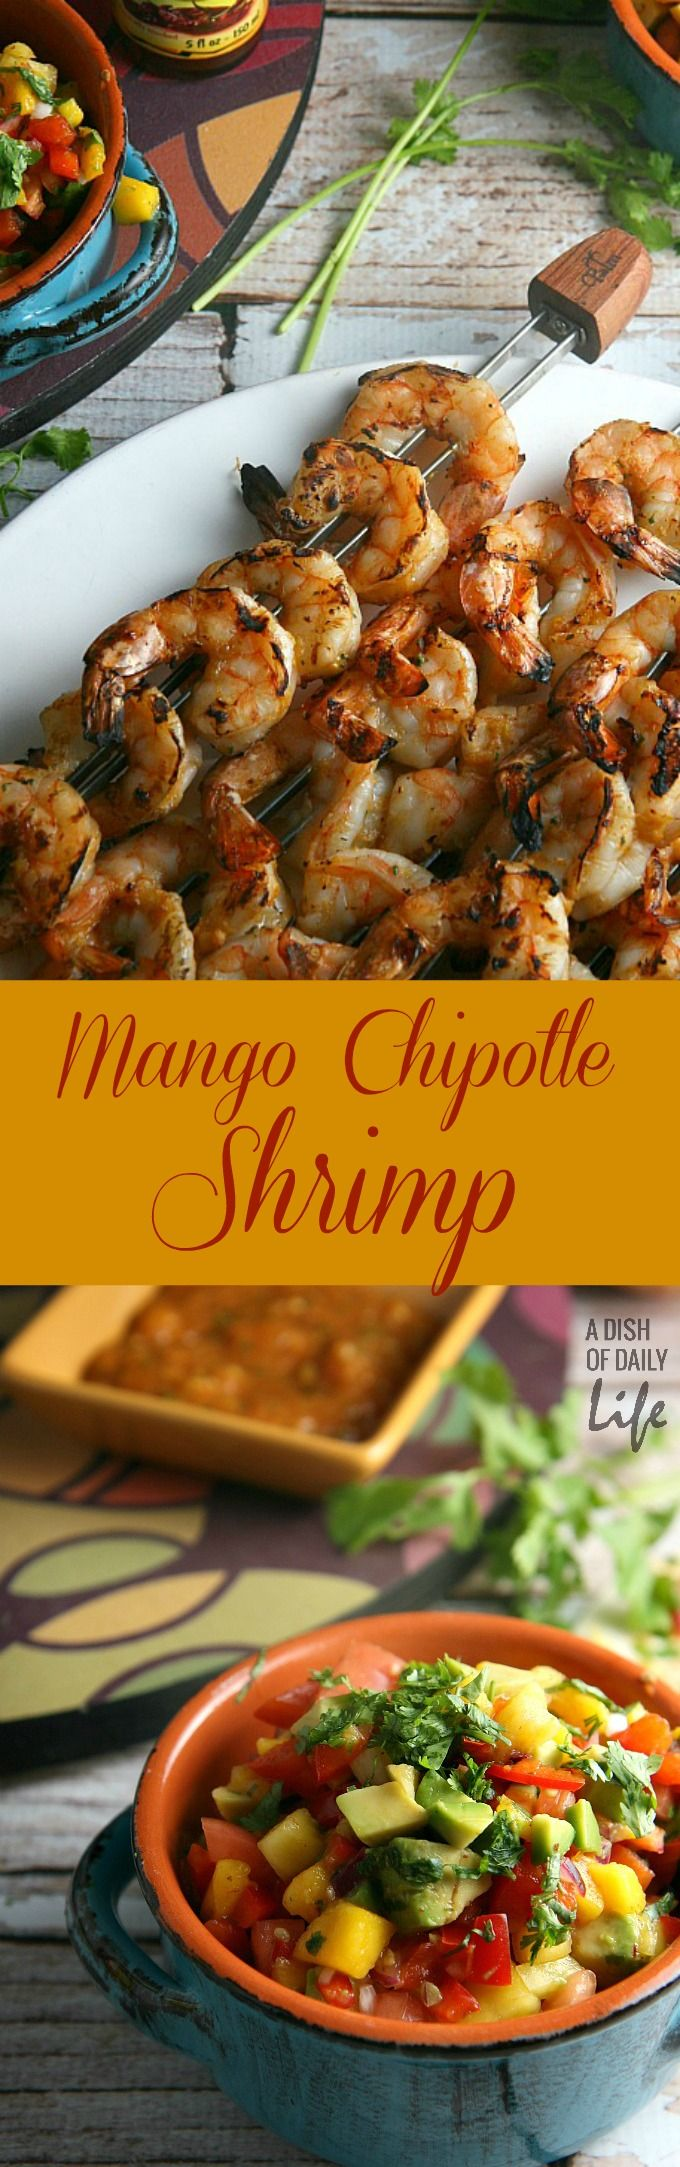 Chipotle Shrimp and Recipes  Mango Grilling air Summer red   Parties   Recipe sneakers Chipotle